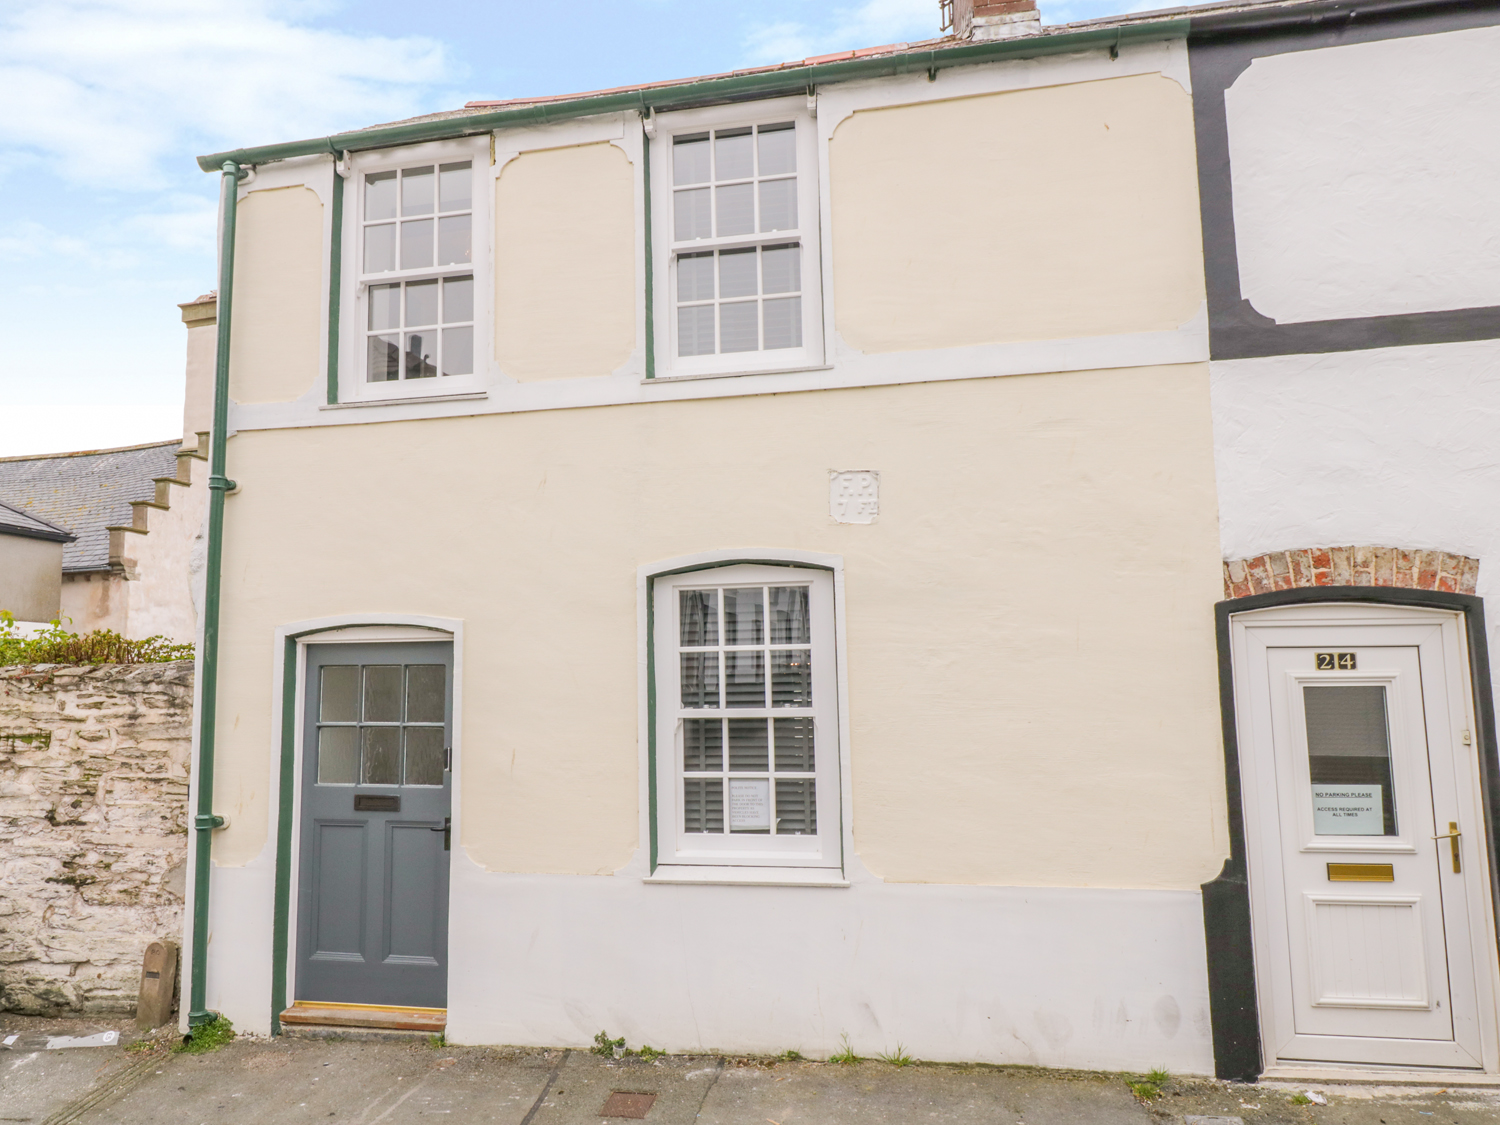 3 bedroom Cottage for rent in Conwy